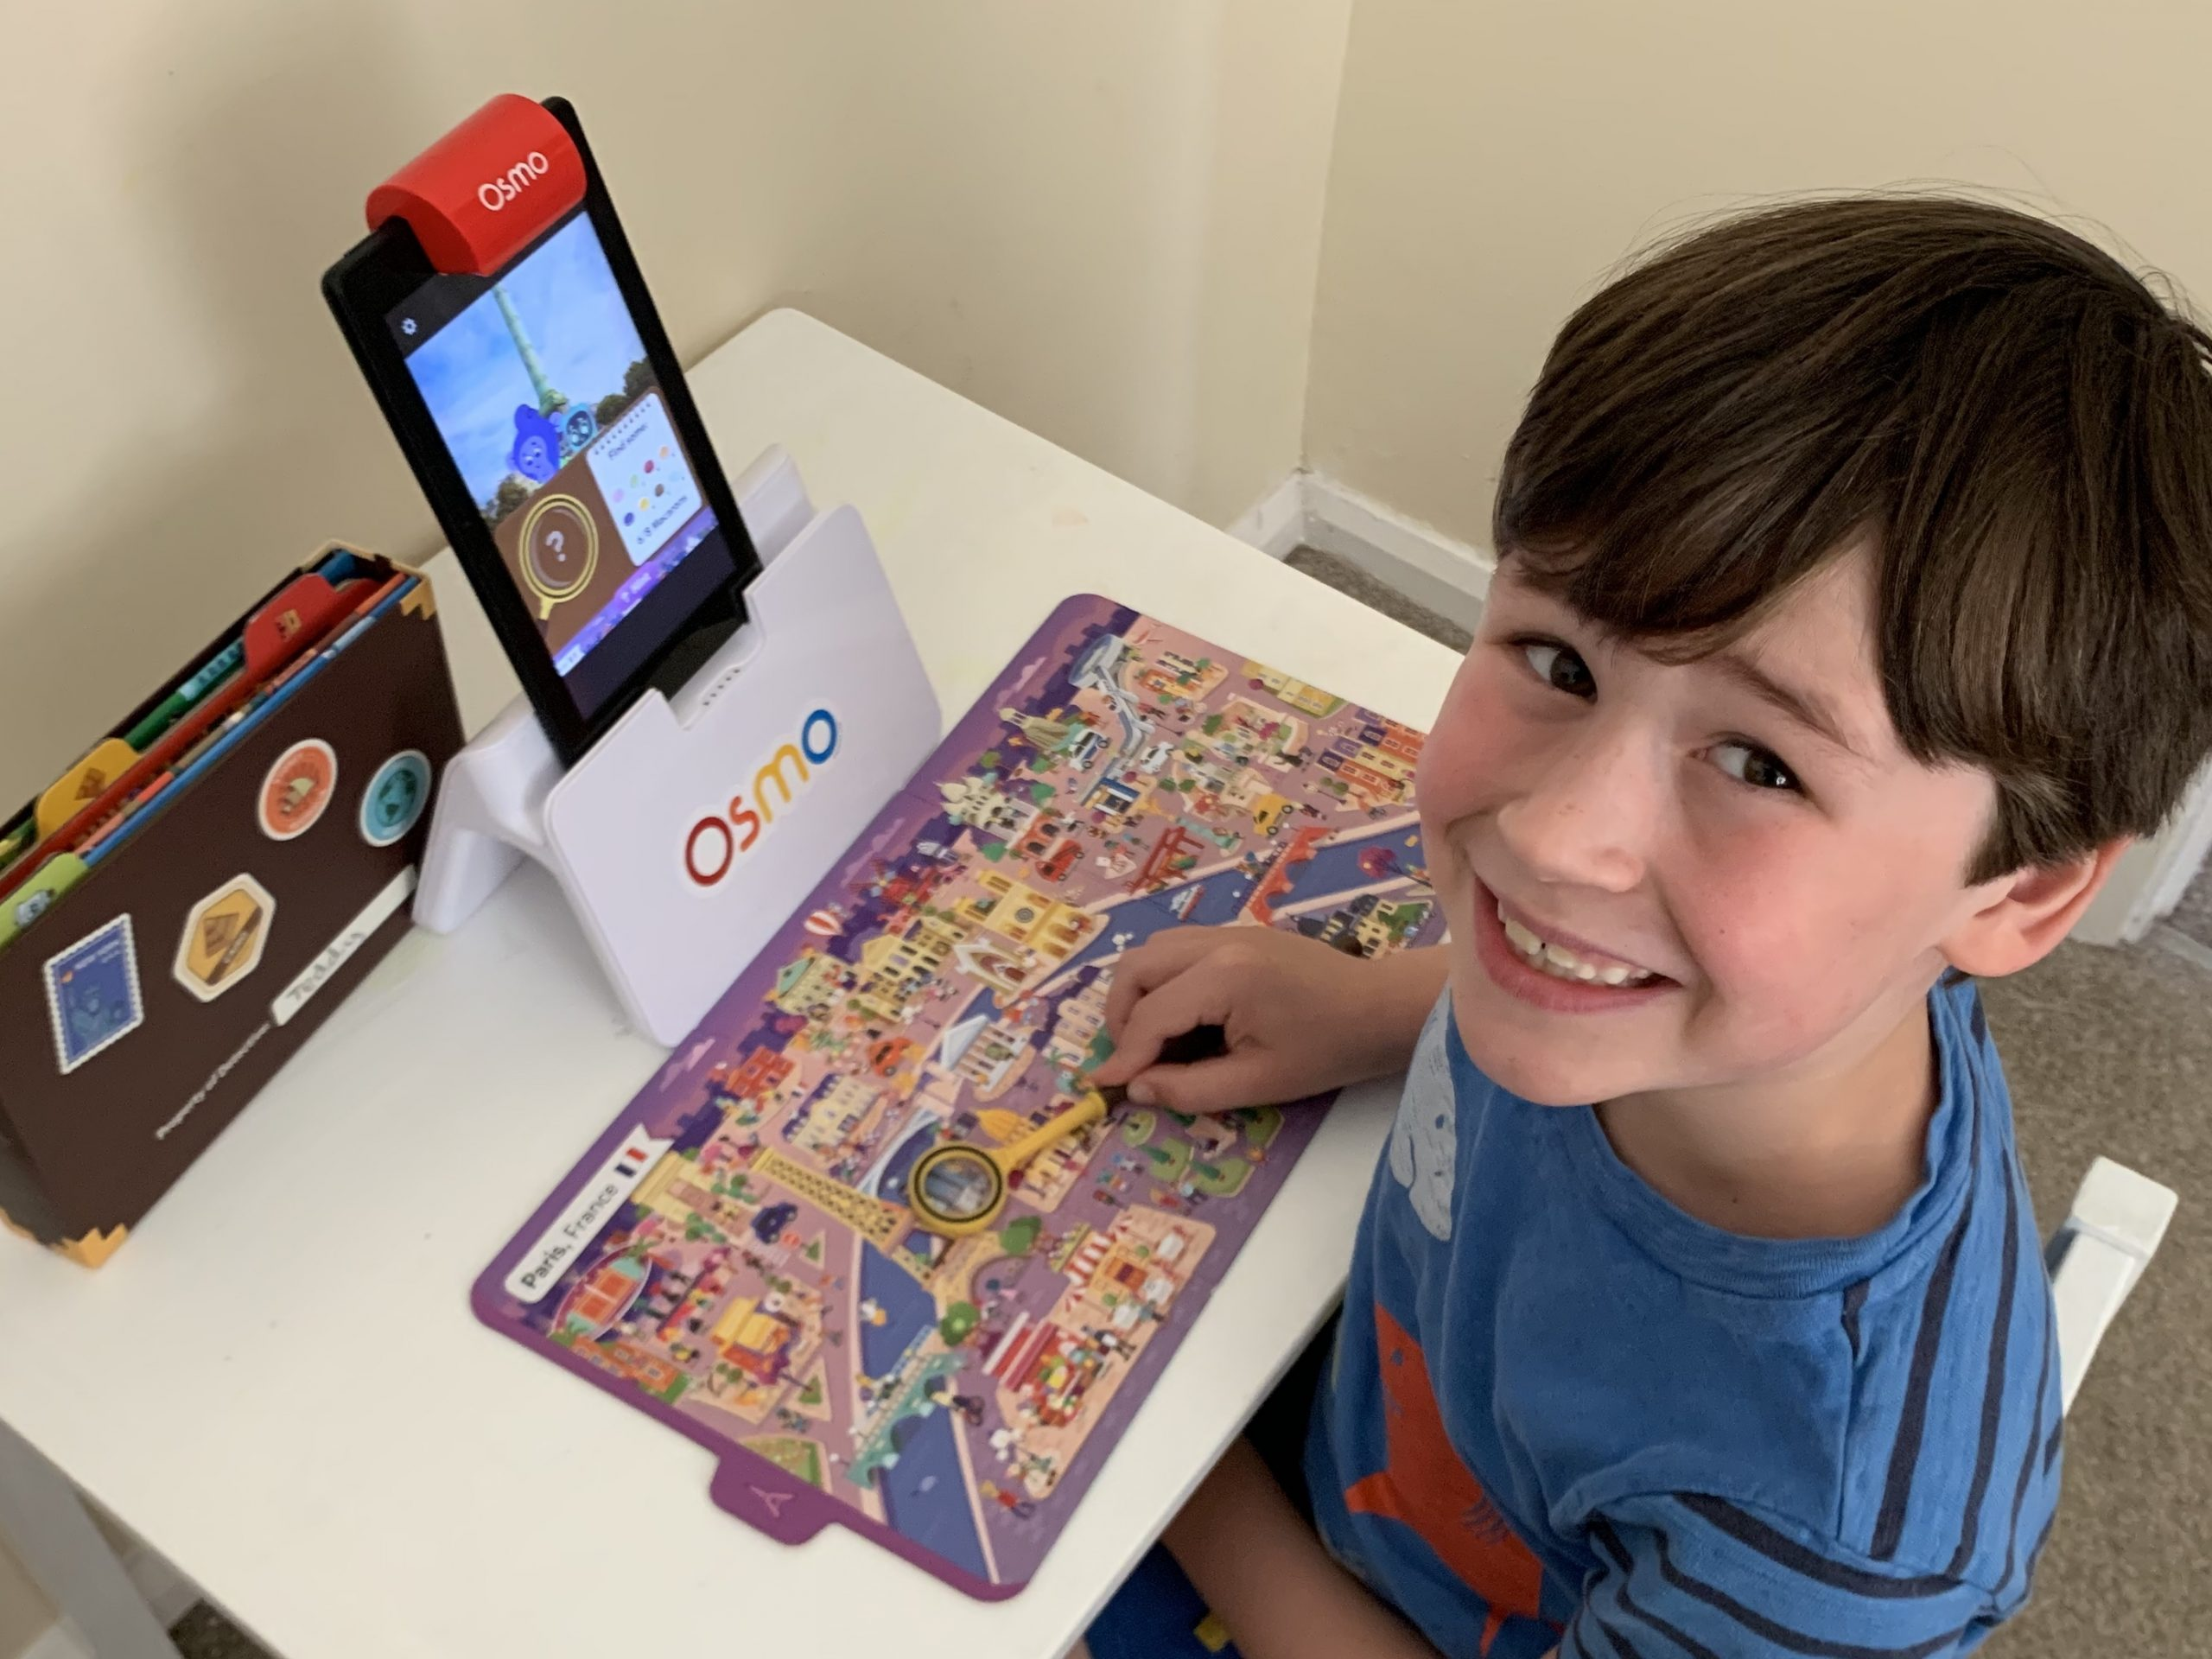 Osmo Review and Osmo detective agency review with a picture of Osmo and a young boy